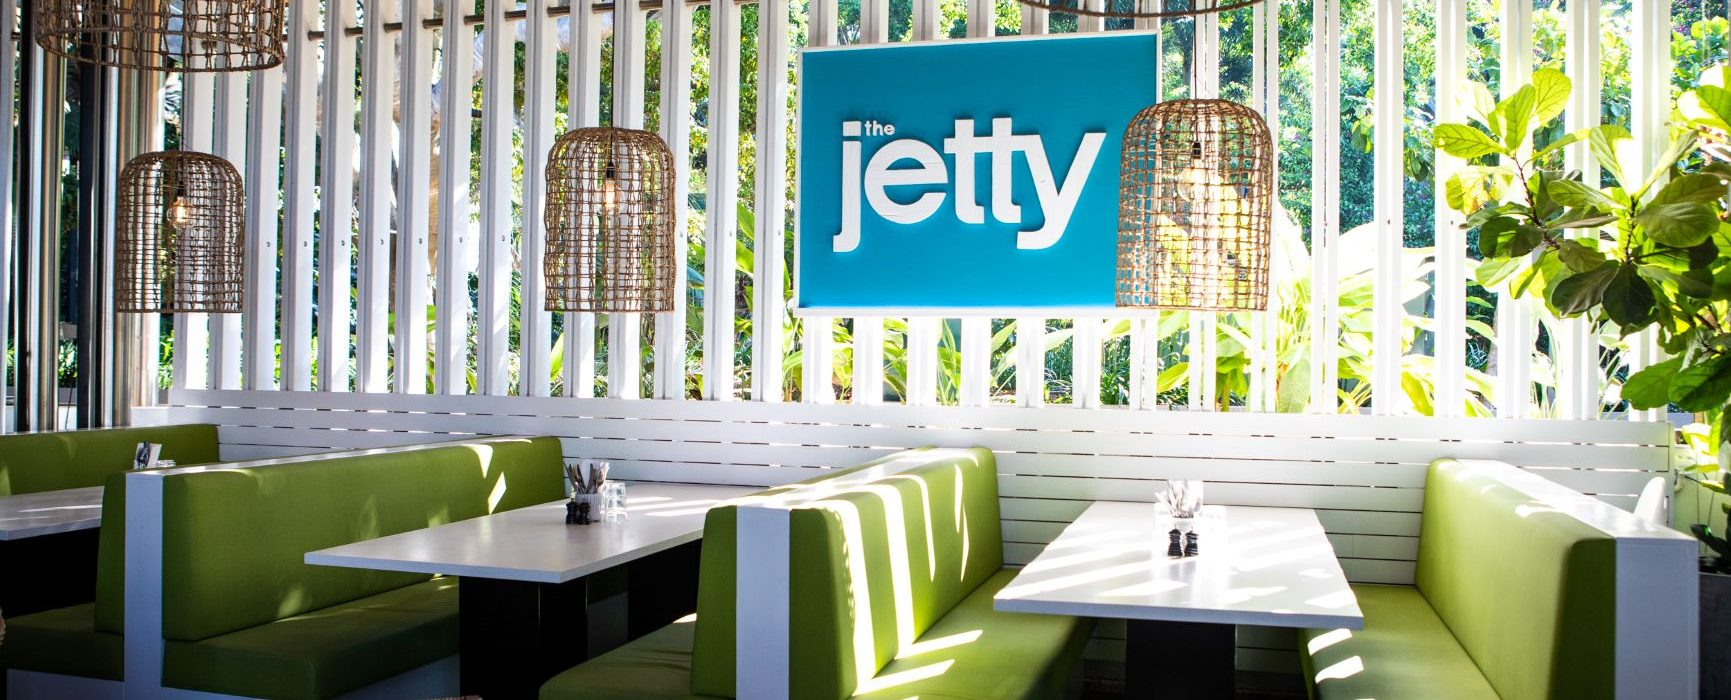 TheJetty_04.12.19_web-24